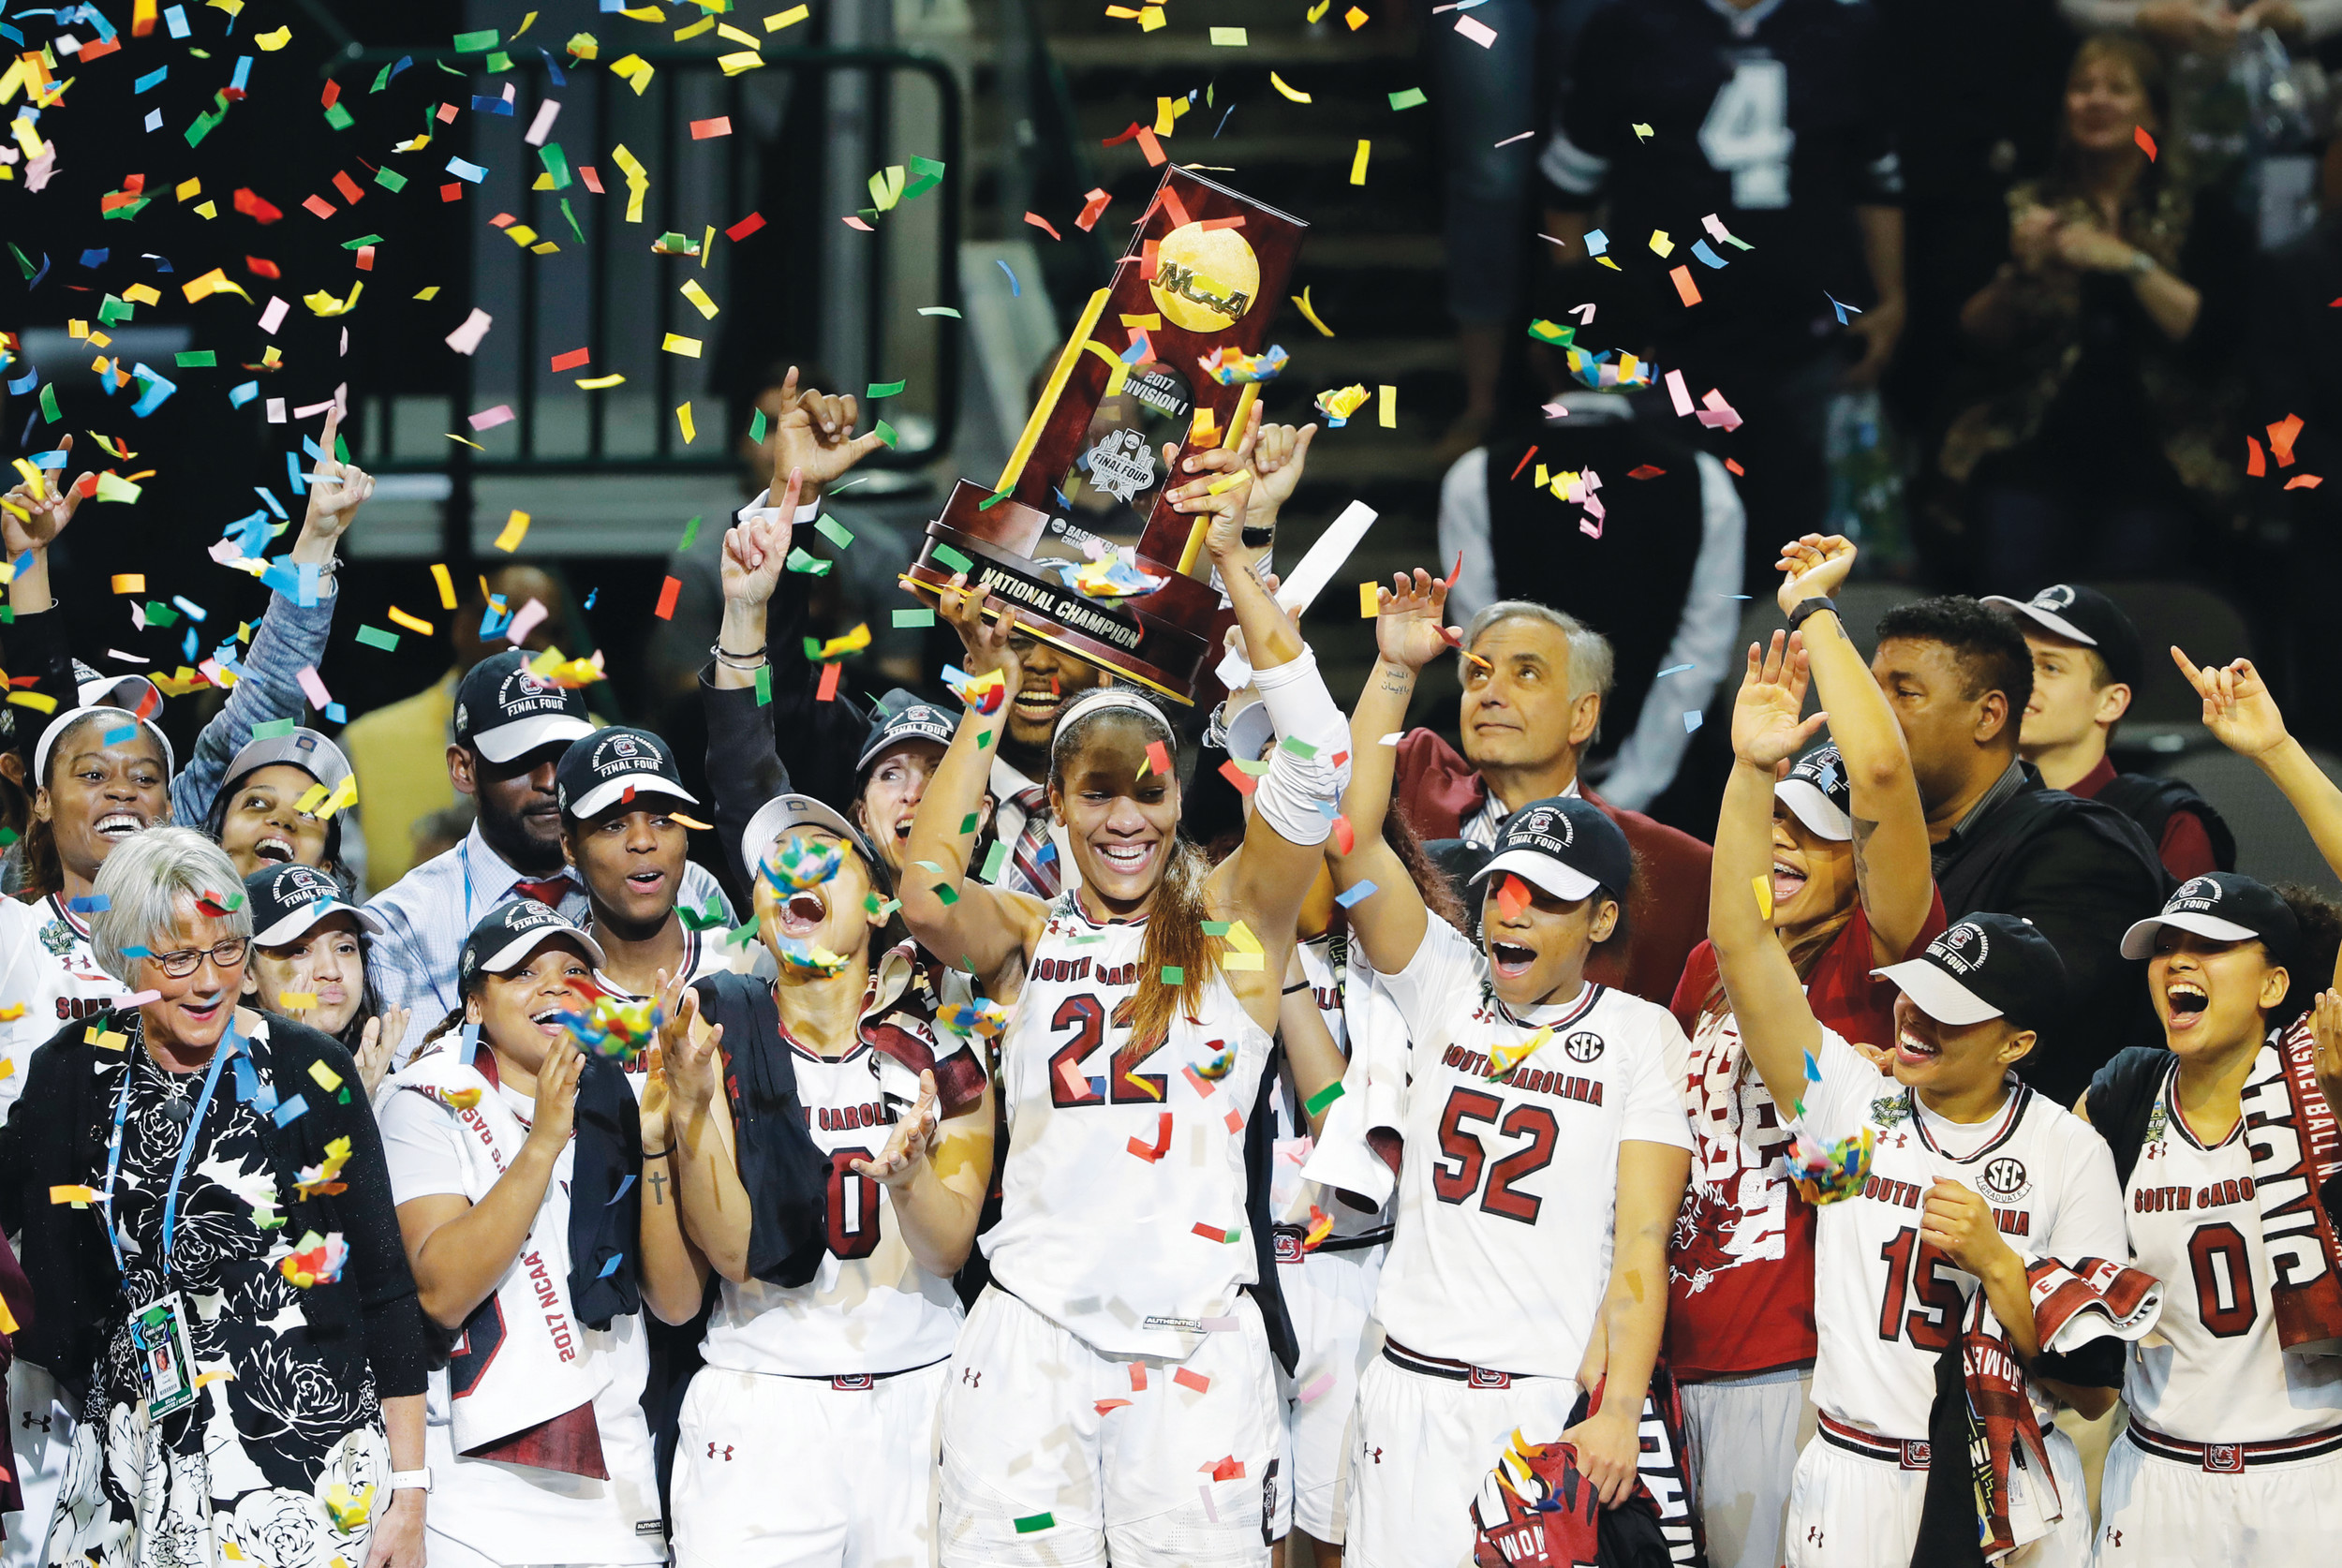 South Carolina forward A'ja Wilson (22) holds up the NCAA women's national championship trophy as she celebrates with teammates after their win over Mississippi State in last year's final in Dallas. Reigning national champion South Carolina leaves behind last year's celebrations and starts preparations this week for a season the Gamecocks hope brings more trophies and cut-down nets their way.